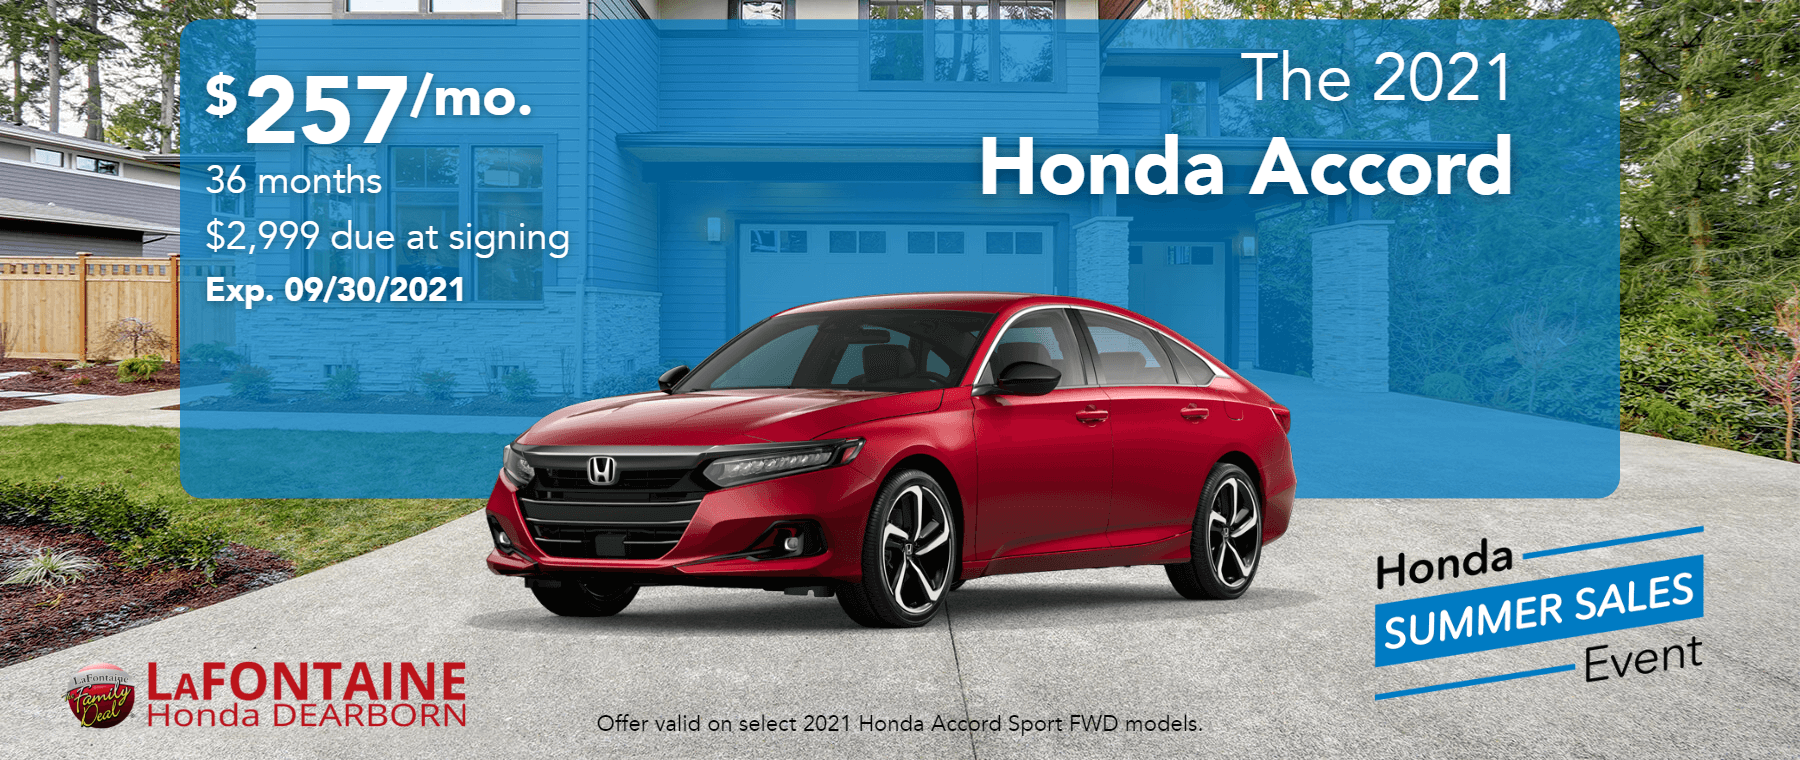 2021_Honda_Accord_Sport_Wed Sep 08 2021 13_03_50 GMT-0400 (Eastern Daylight Time)